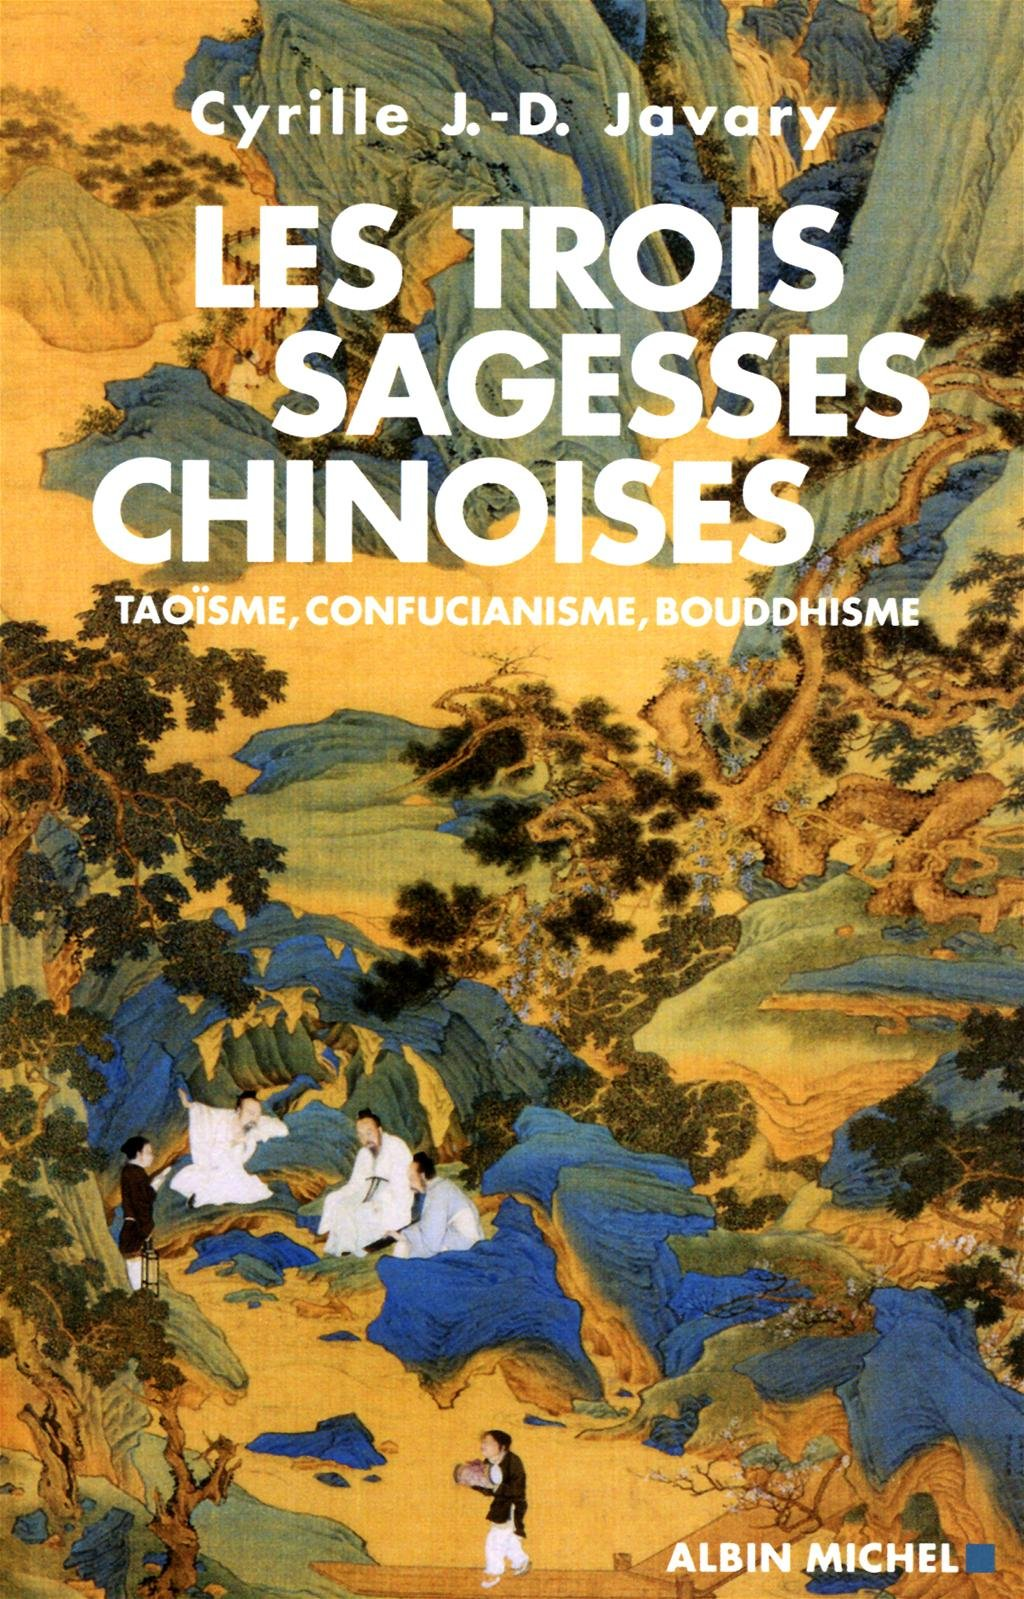 Les trois sagesses chinoises – Cyrille Javary